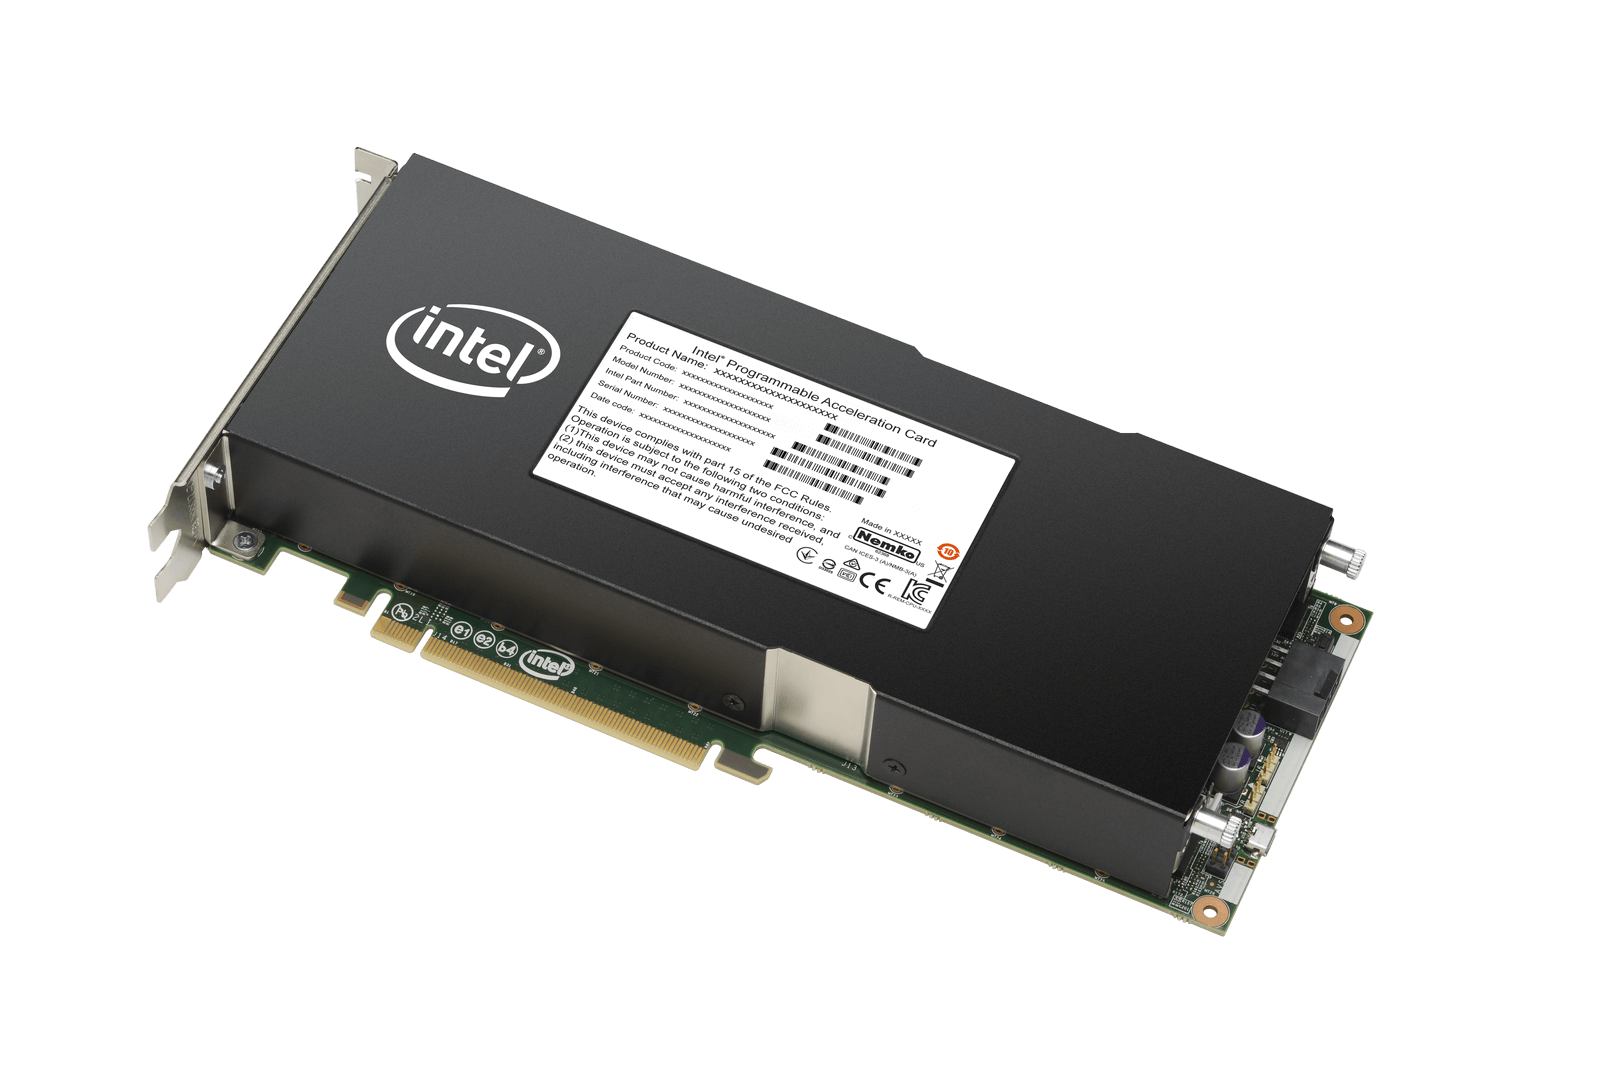 Intel Stratix 10 programmable acceleration card offers enormous